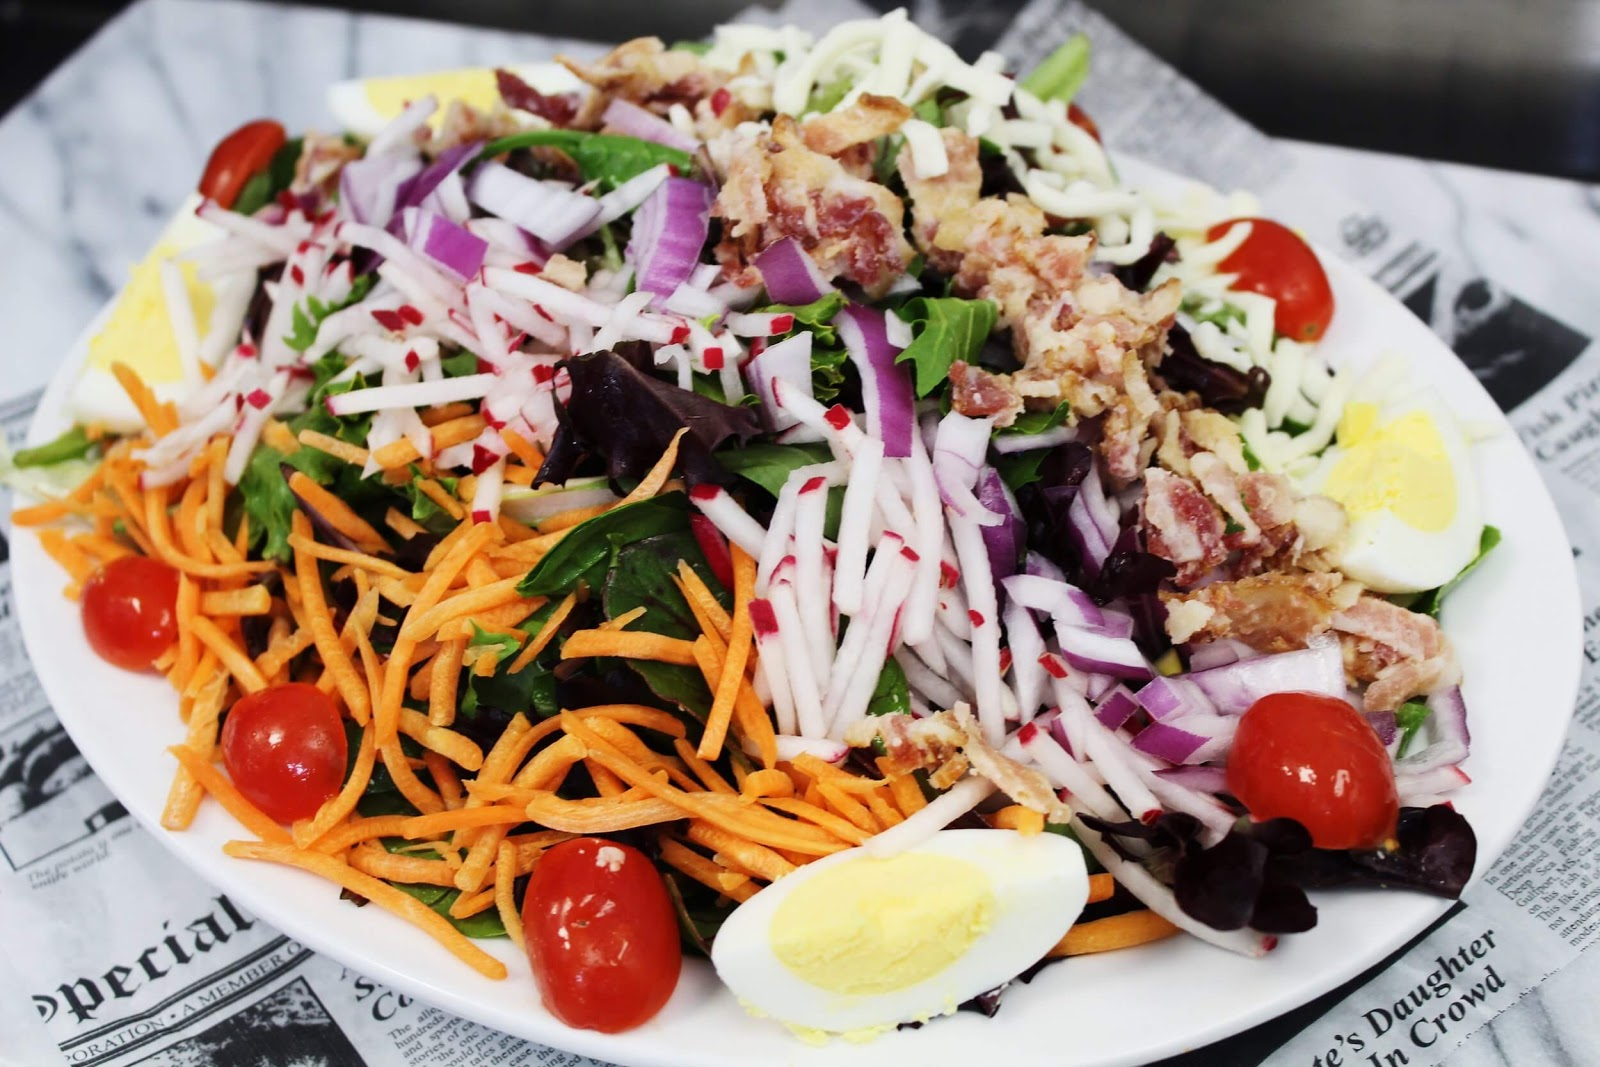 Salad with red onions, cherry tomatoes, carrots, and boiled eggs